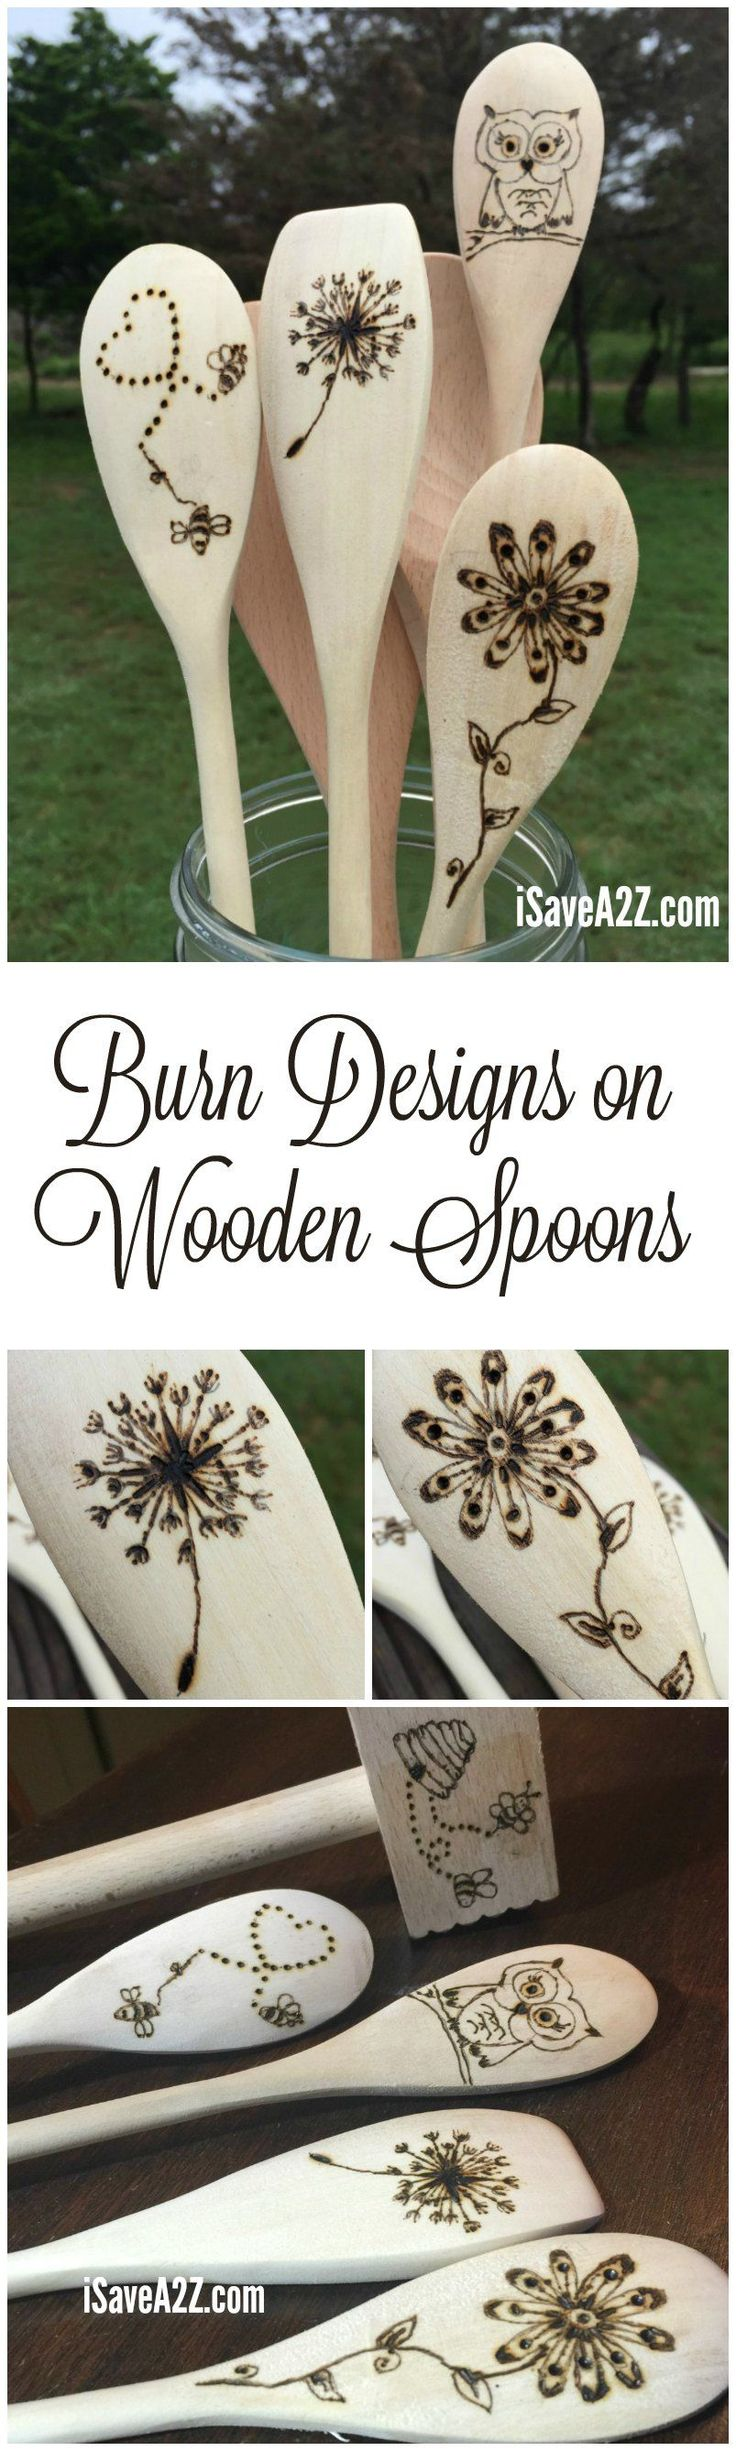 25+ unique Wooden spoon crafts ideas on Pinterest | Wooden spoons ...